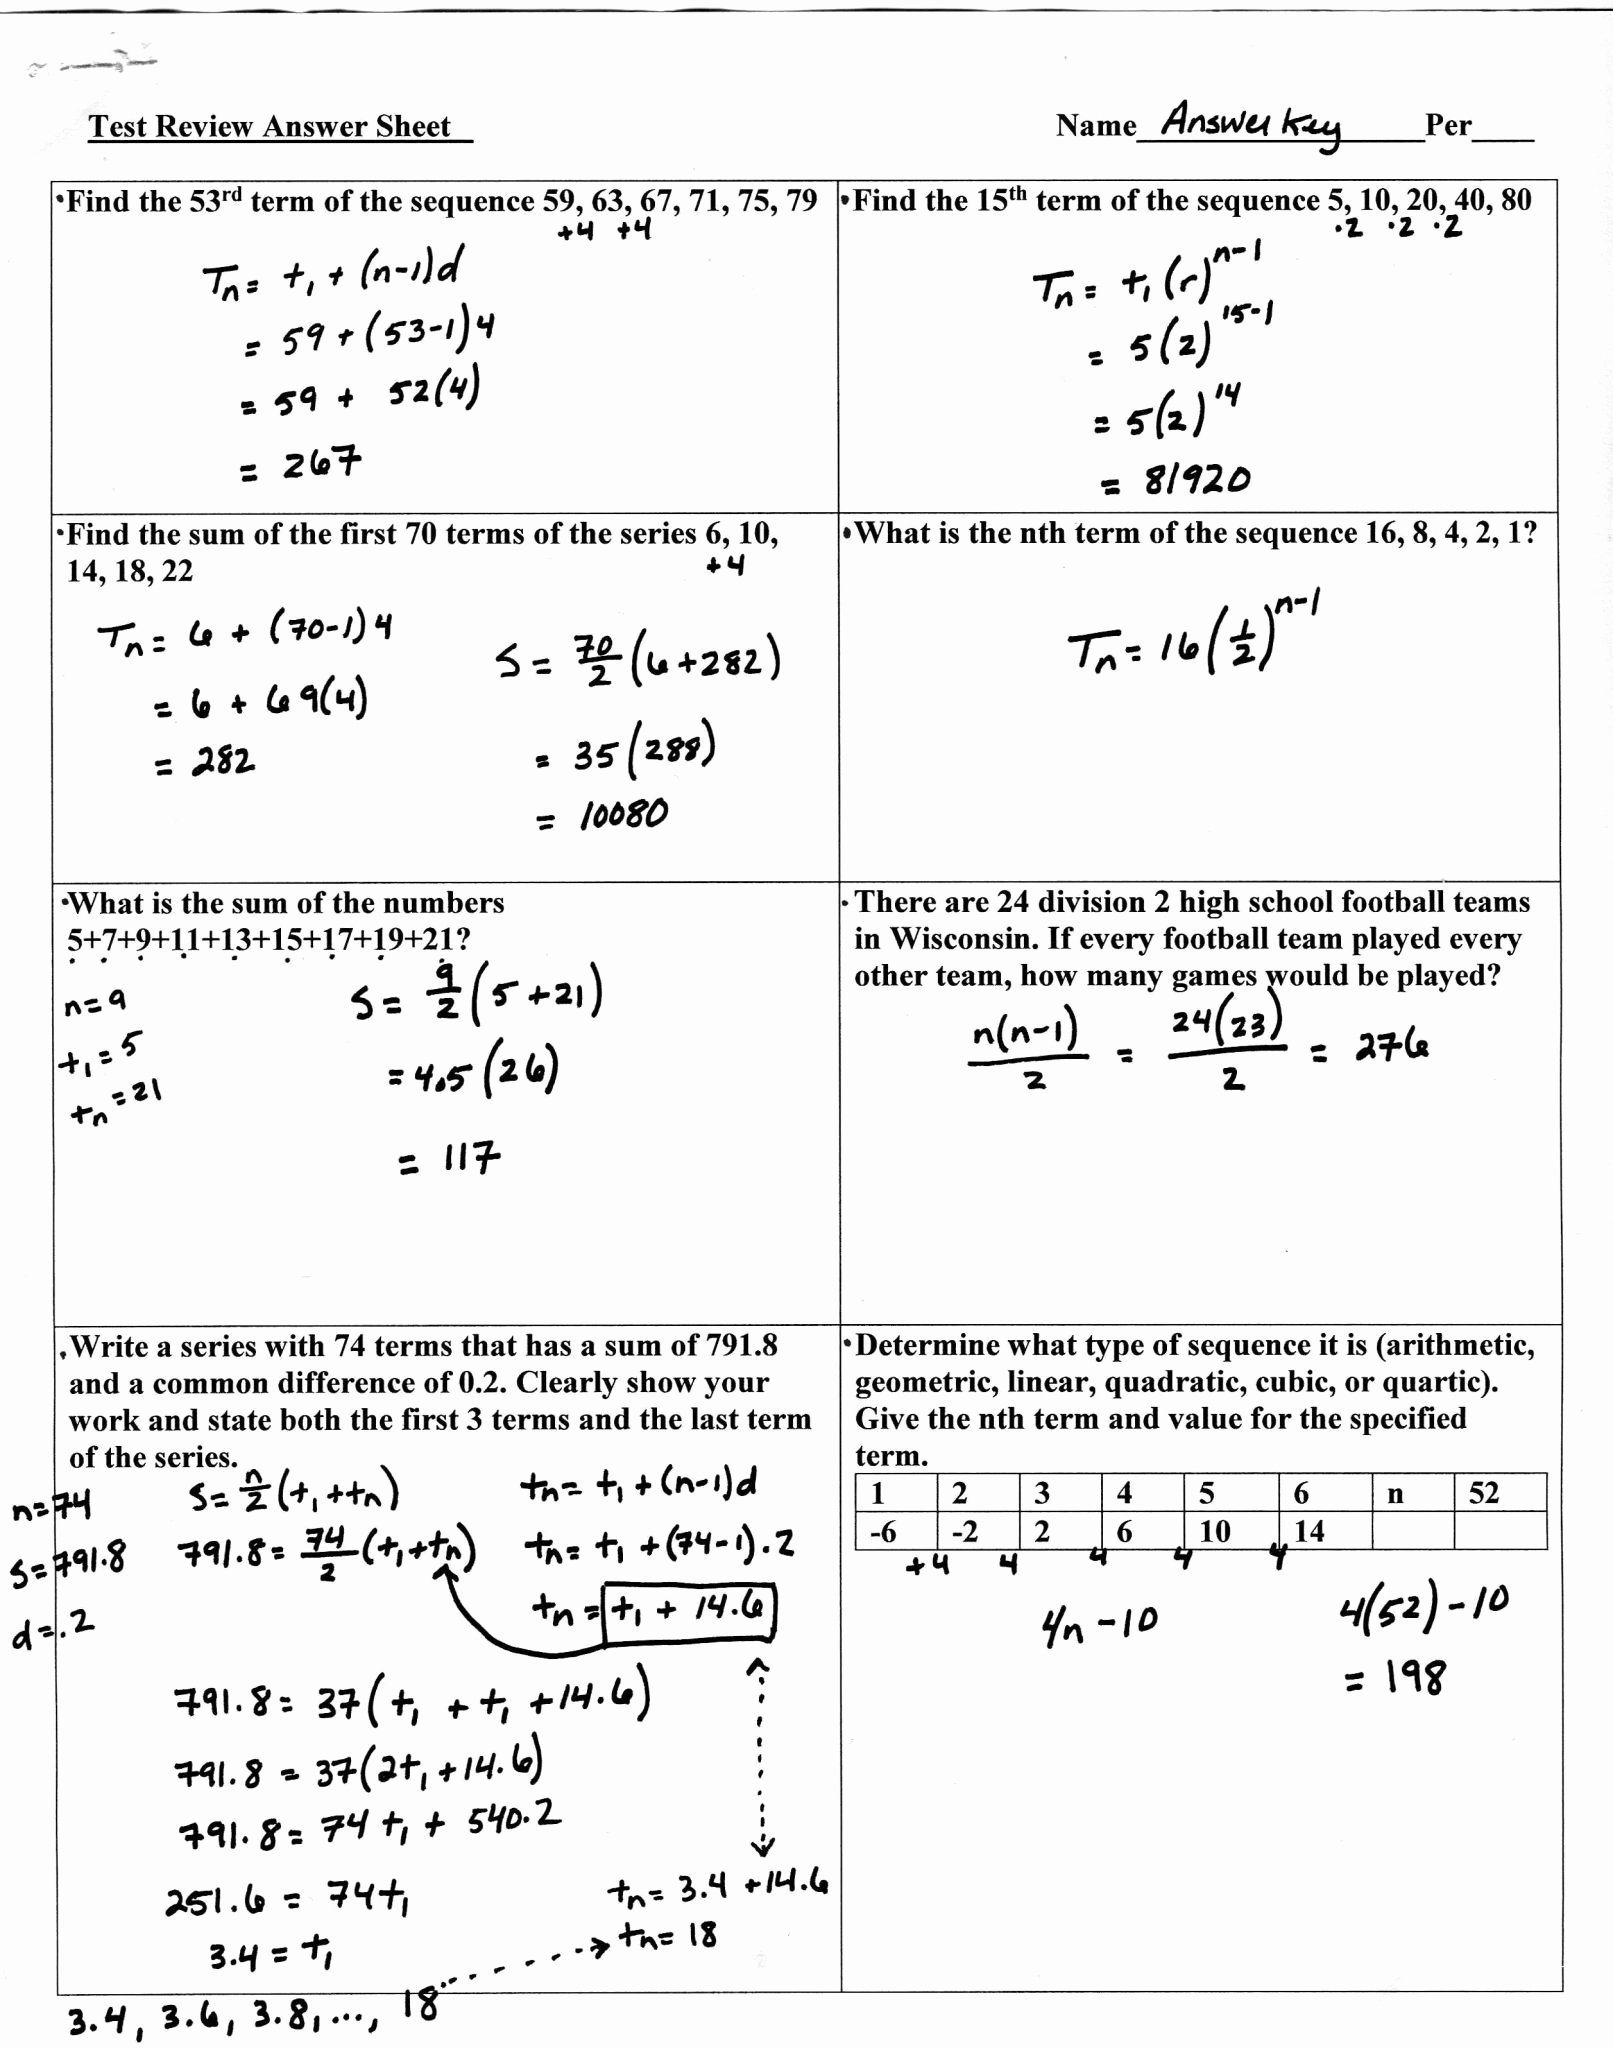 Geometric Sequence Worksheet Answers New Geometric Sequences and Series Worksheet Answers